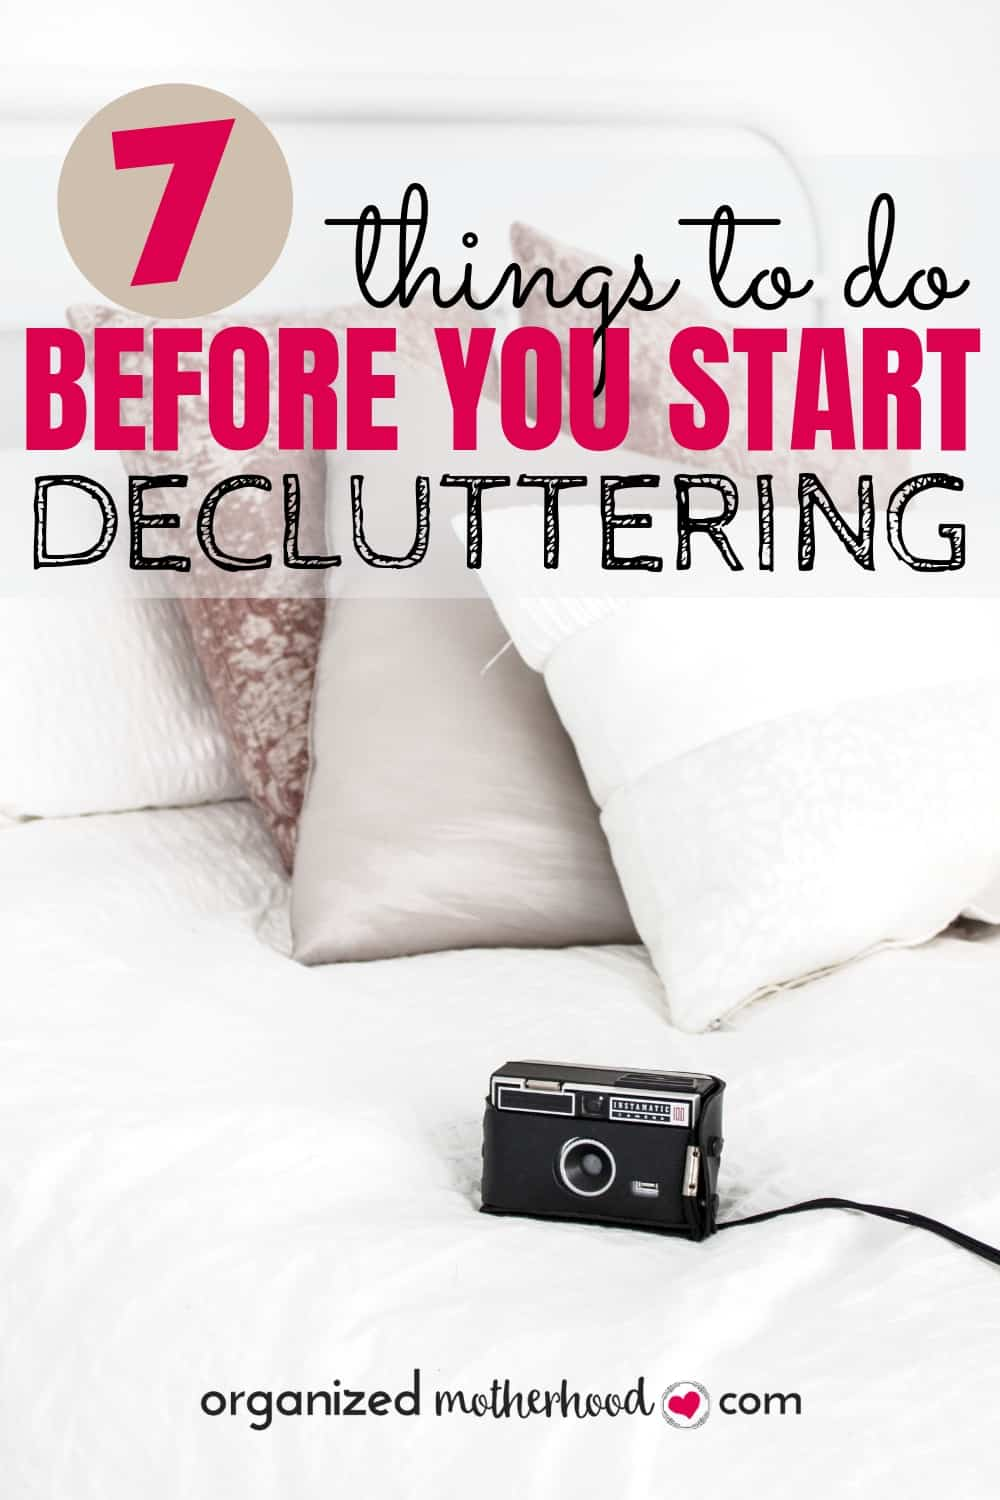 How should you start decluttering? Before you begin, these 7 tips will help you stay organized and motivated so you can have an organized, clutter-free home. #declutter #organized